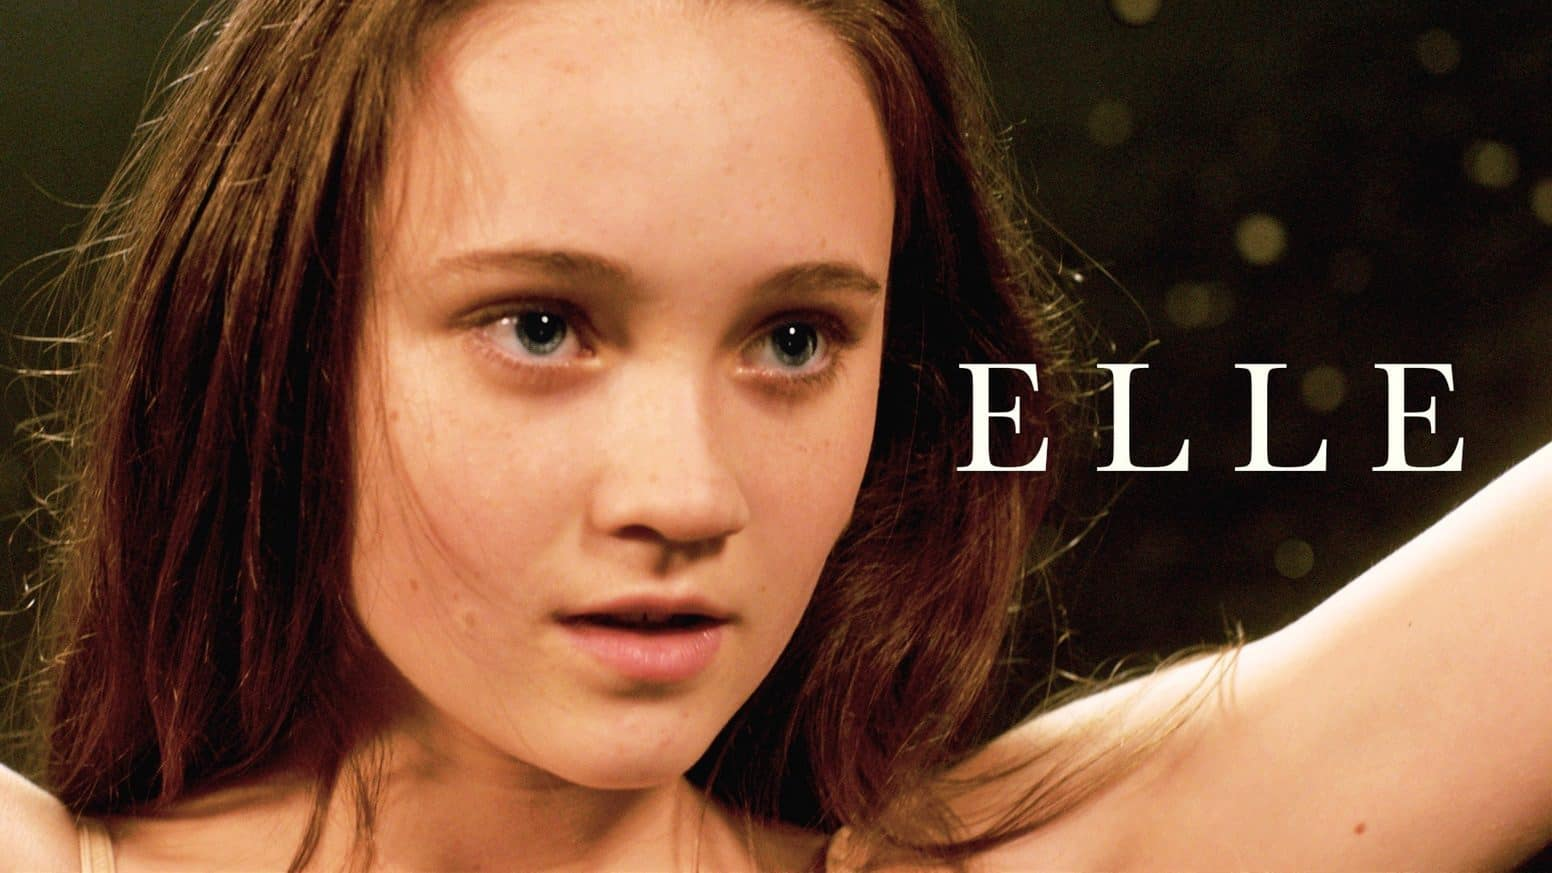 Elle: Review